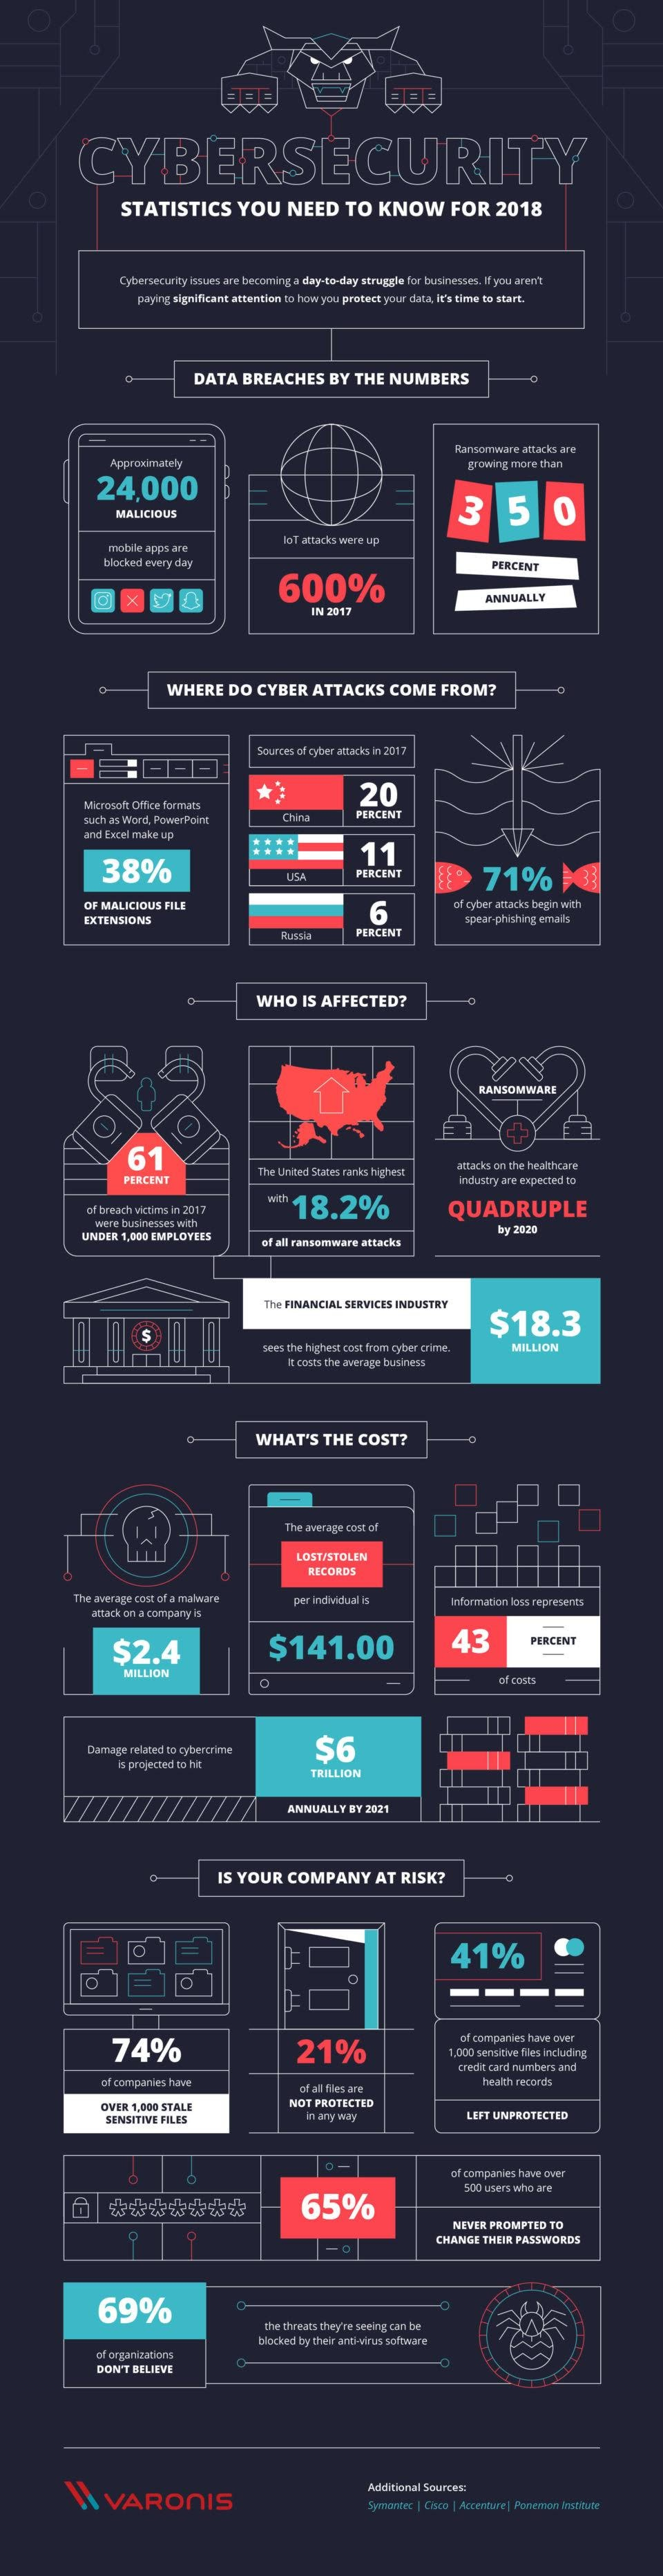 60 Must-Know Cybersecurity Statistics for 2018 #infographic